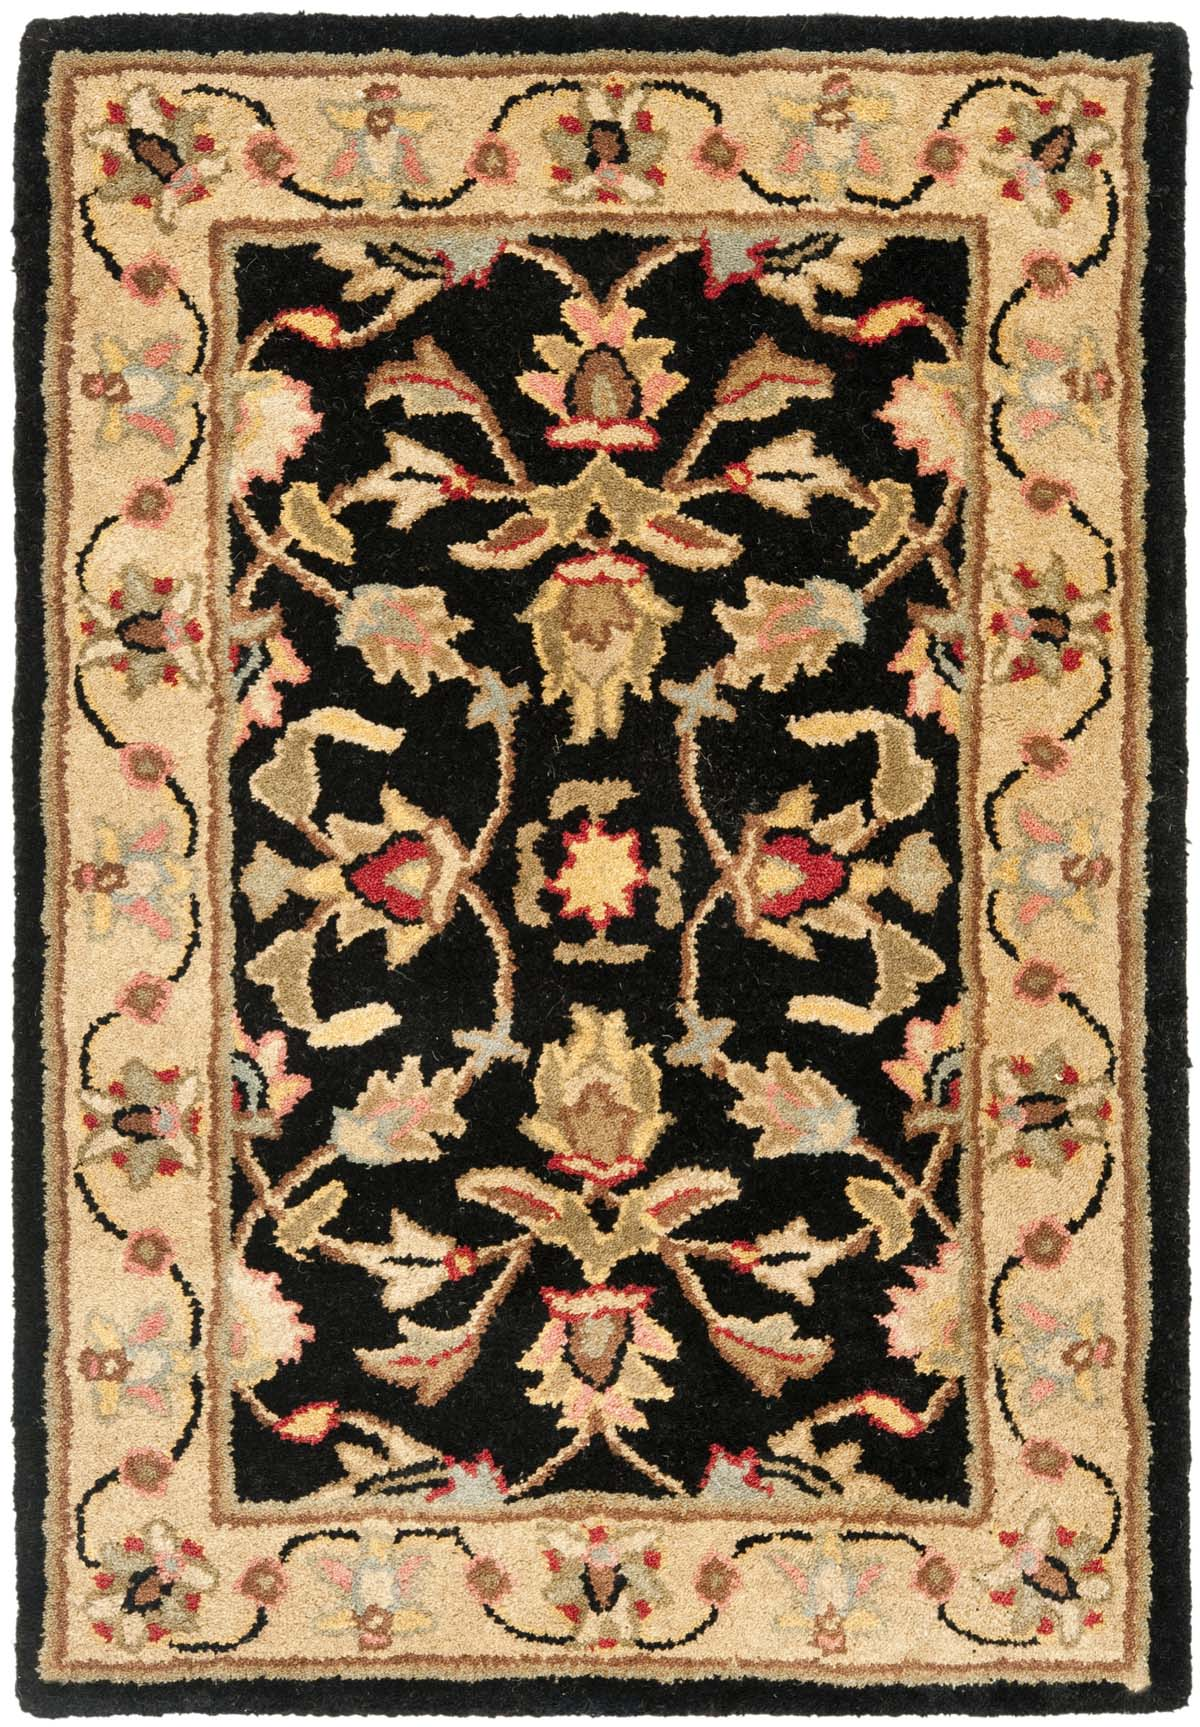 rug hg957a heritage area rugs by safavieh. Black Bedroom Furniture Sets. Home Design Ideas